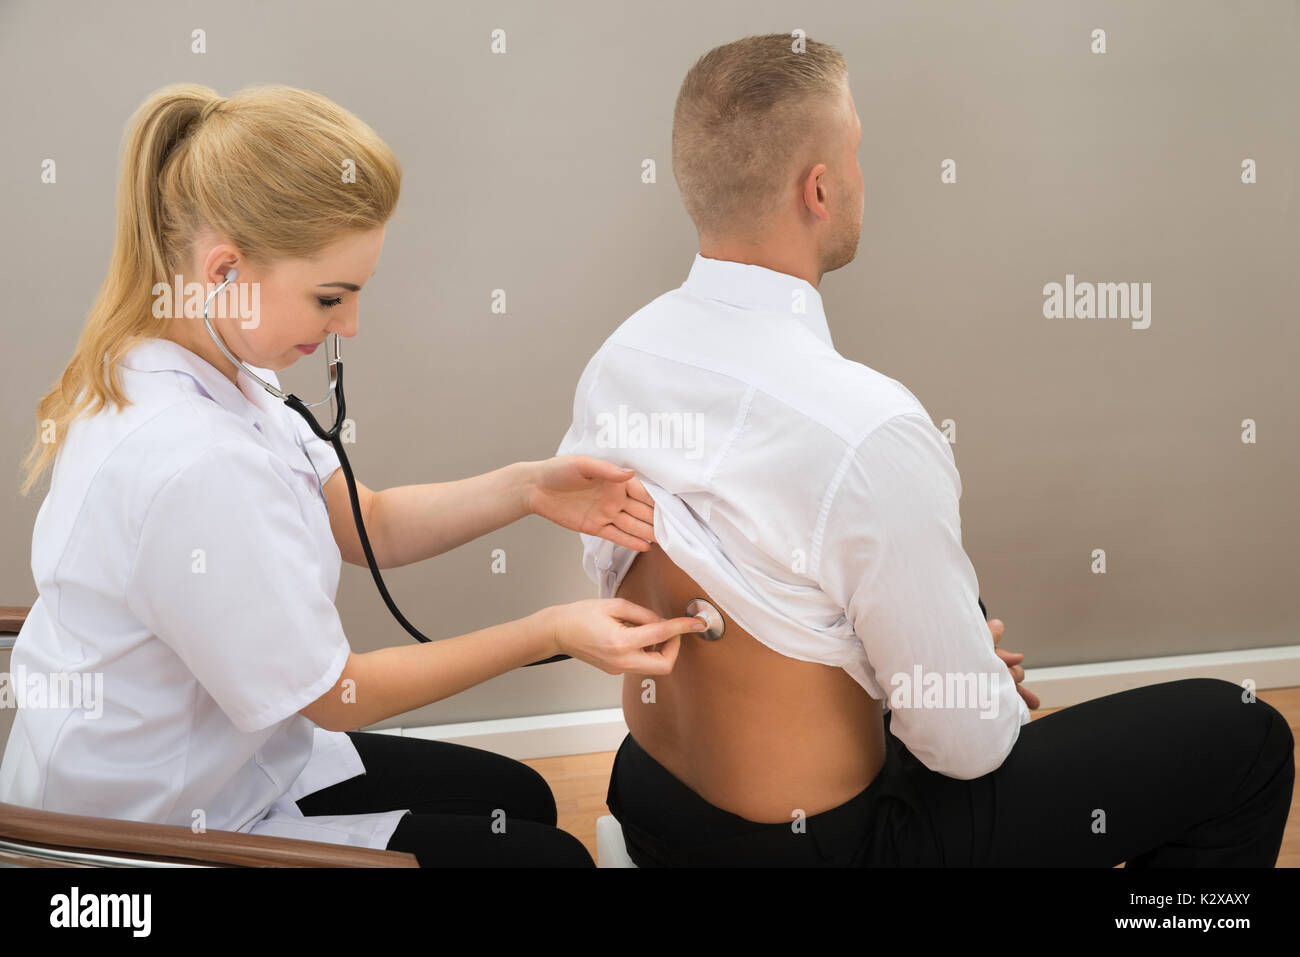 Female Doctor Examine Patient's Back With Stethoscope - Stock Image